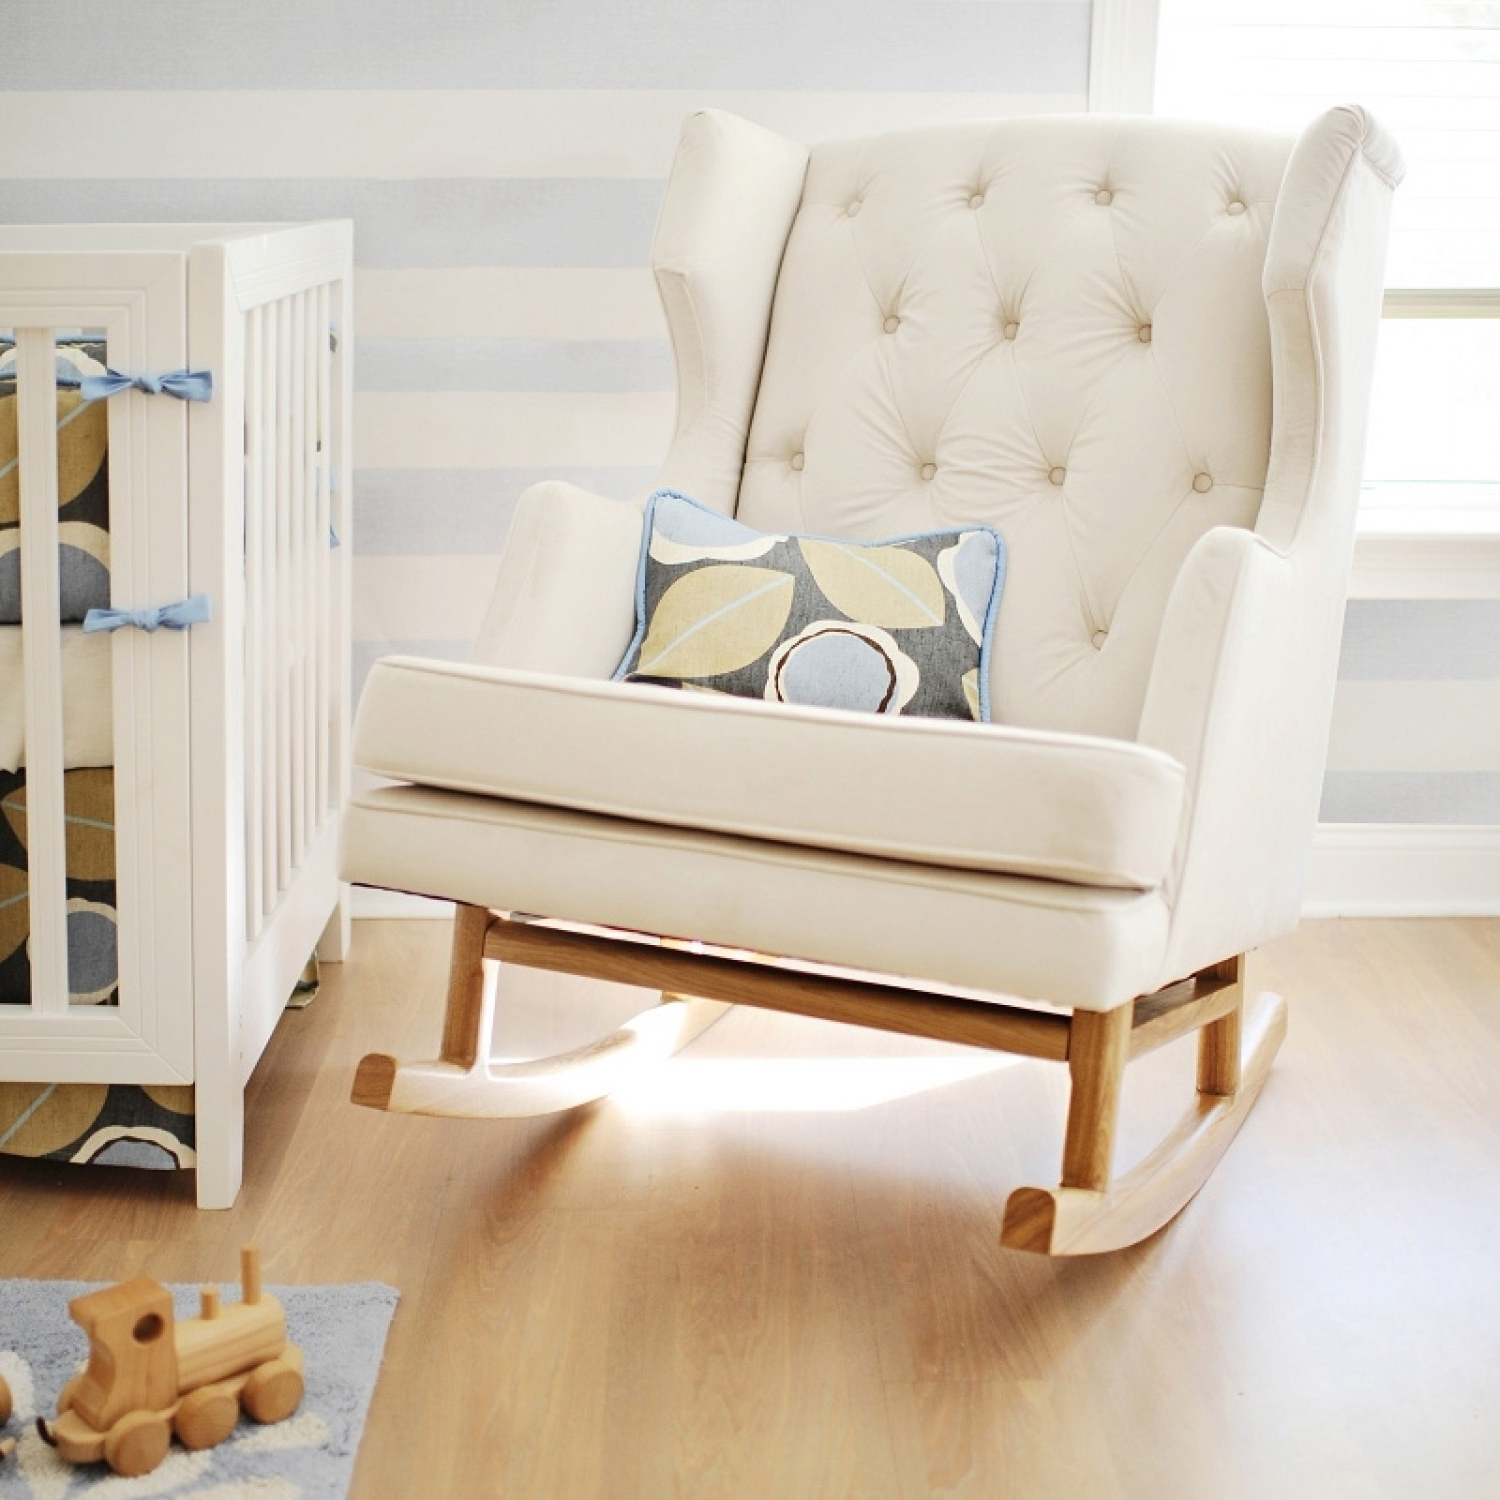 Well Known White Wicker Rocking Chair For Nursery Within Bedroom : Furniture Traditional Bedroom Chair Magnificent Wicker (View 8 of 20)